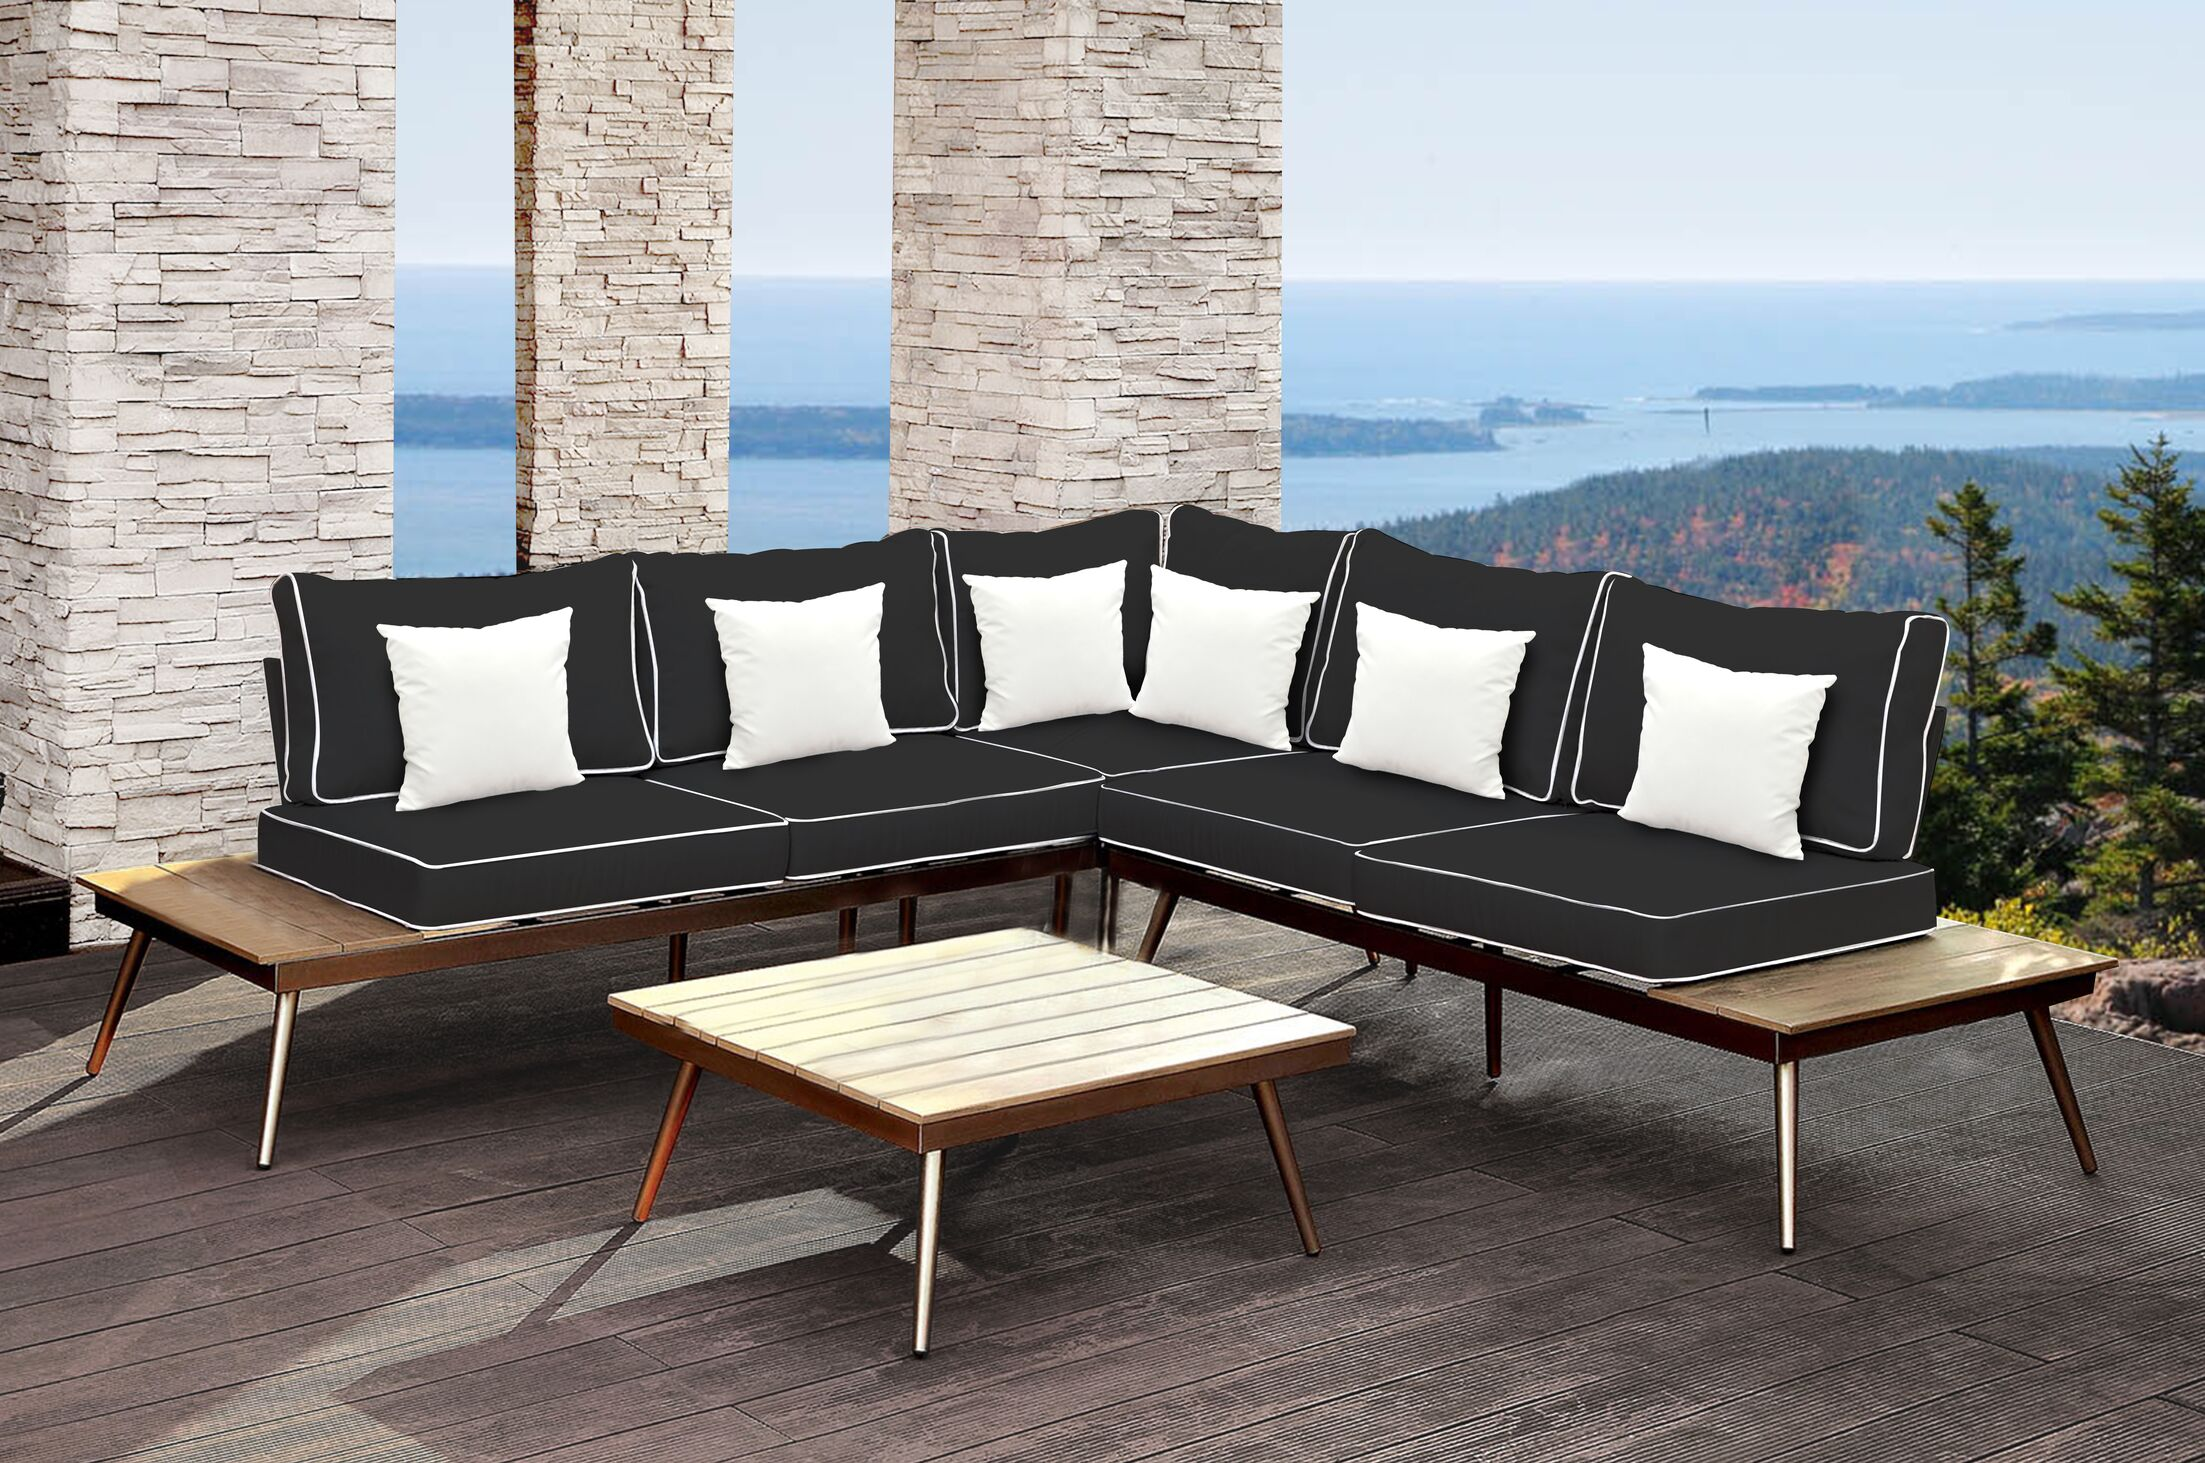 Wisner Outdoor Modular 3 Piece Sectional Set with Cushions Cushion Color: Black/White, Accent Pillow Fabric: White Solid